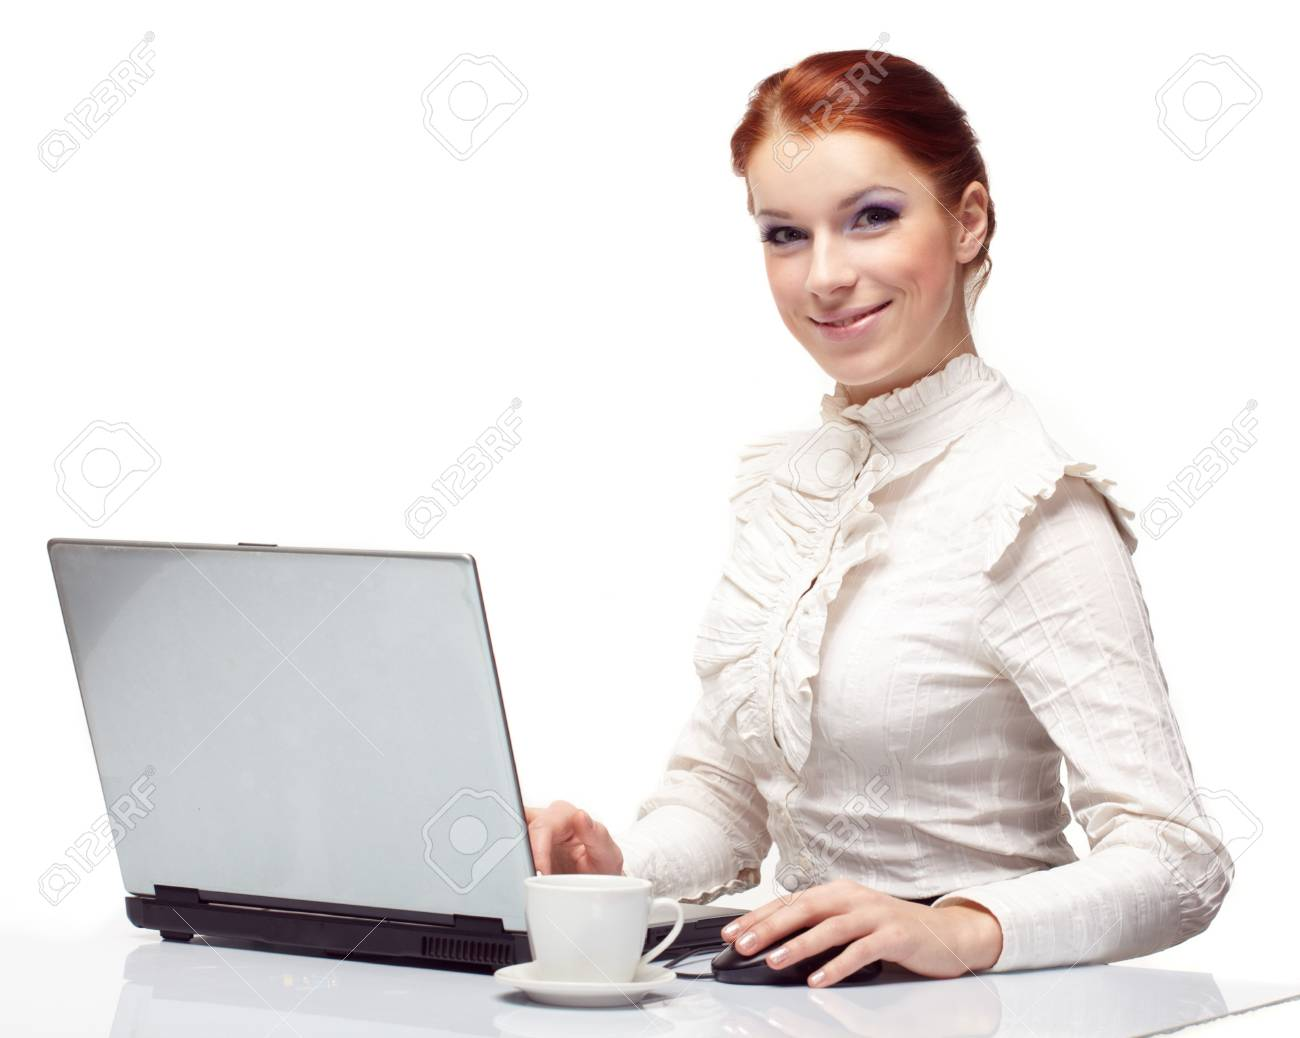 Business woman working on her laptop. Stock Photo - 7063607